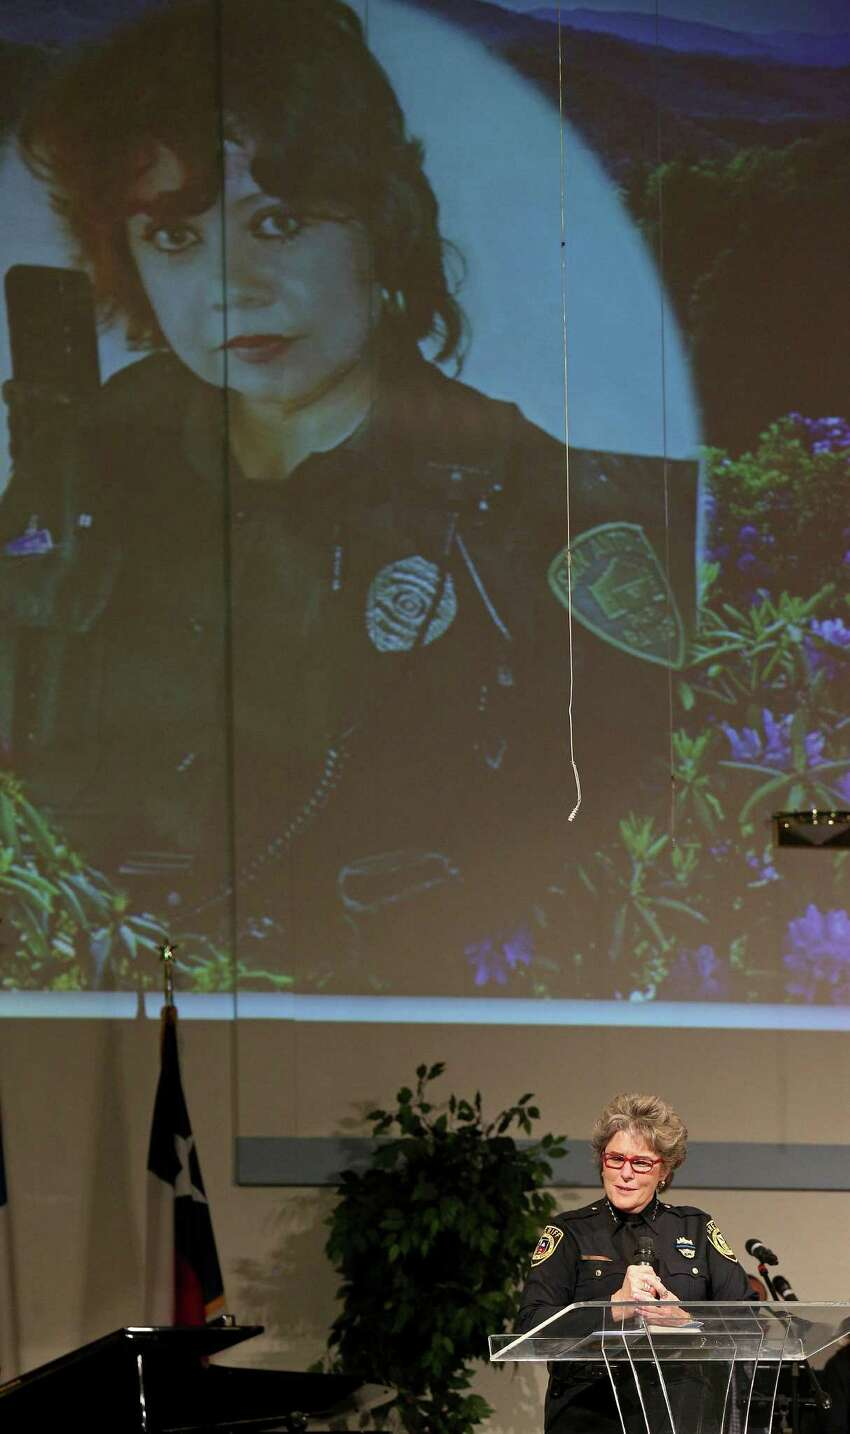 Bexar County Sheriff Susan Pamerleau speaks during the funeral service for BCSO Deputy Doralinda Solis Nishihara held Friday Dec. 9, 2016 at Sendero Assembly of God Church. BCSO Deputy Doralinda Solis Nishihara died after driving her vehicle into a large sinkhole Sunday evening on the Southwest Side.